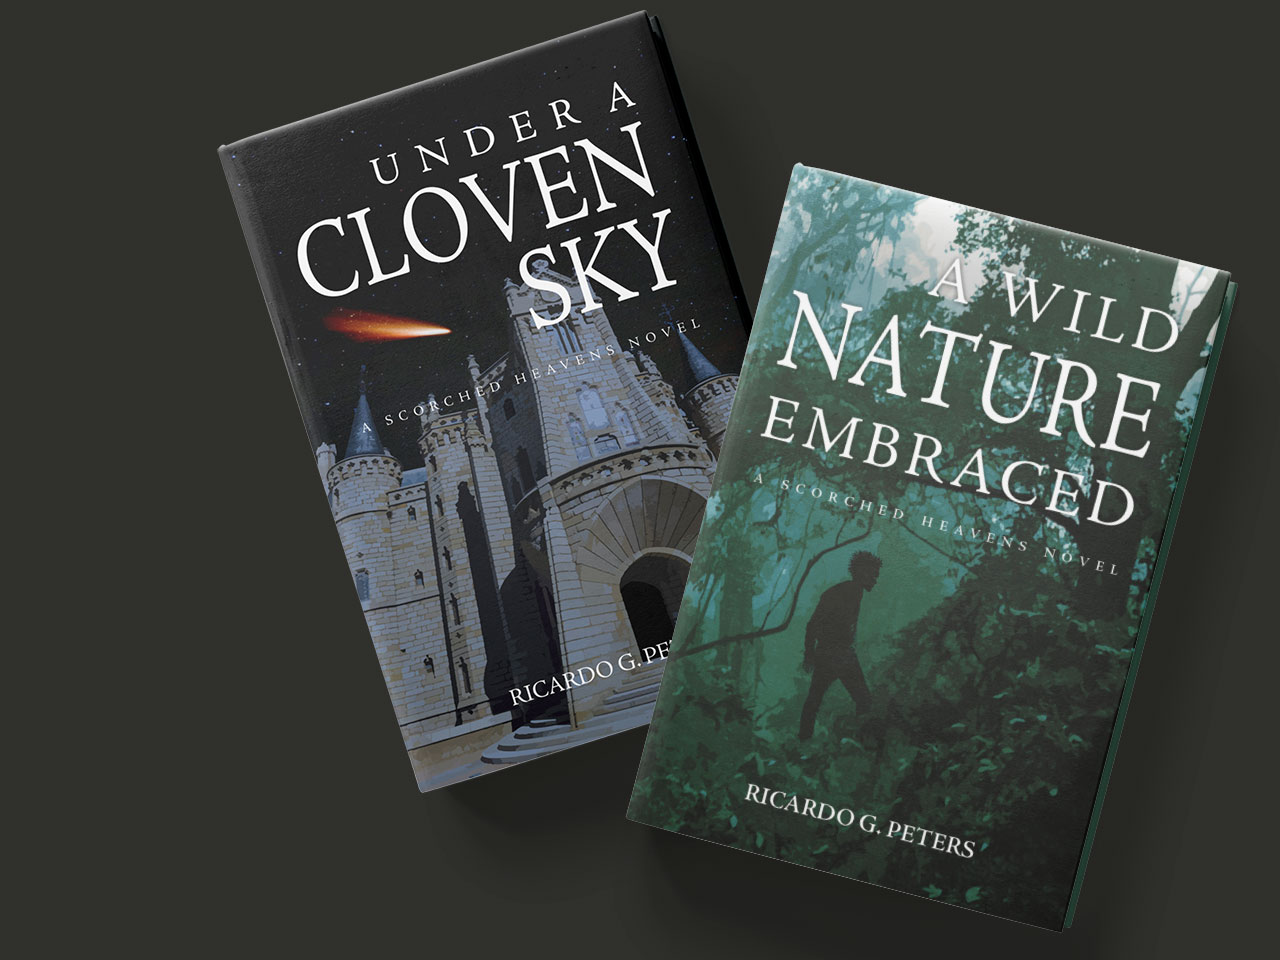 Covers of the sequel and first book, showing a moody green jungle scene and a shadowy character in profile